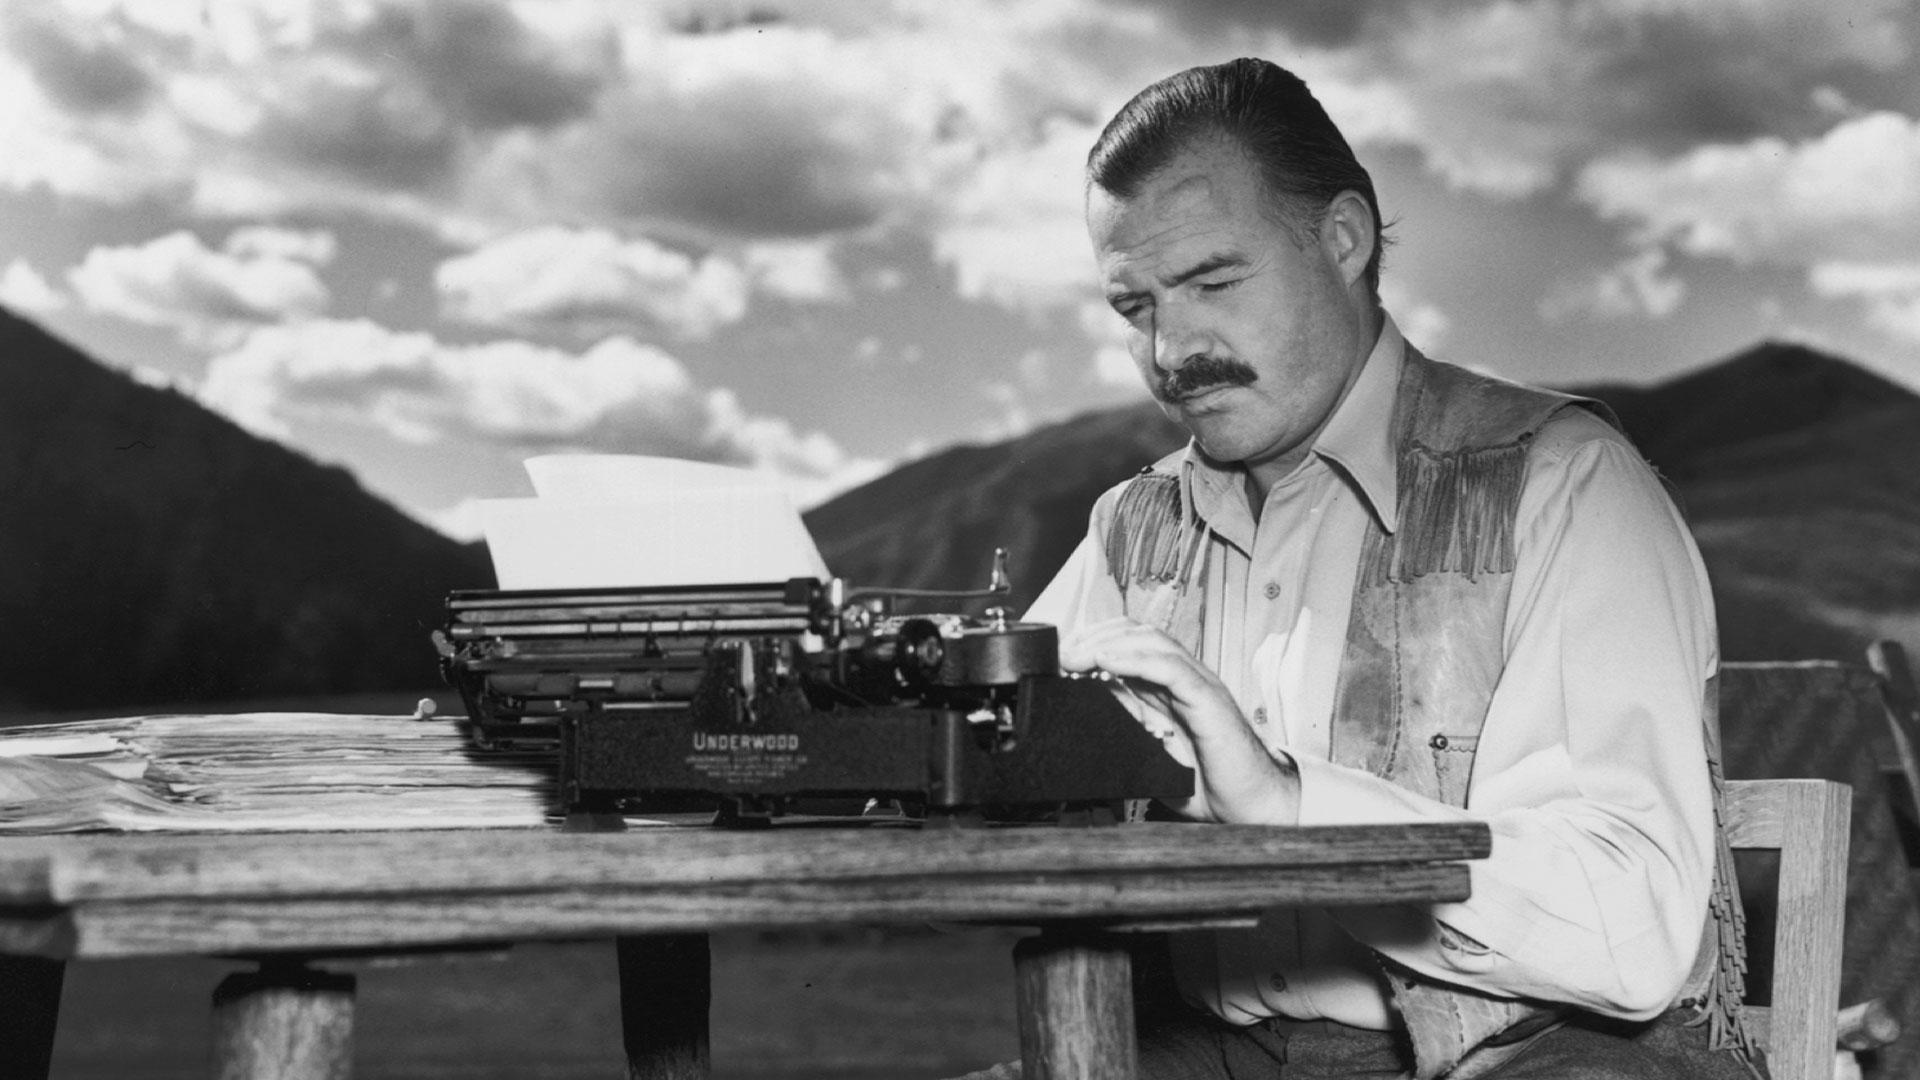 photo of Ernest Hemingway at a typerwiter